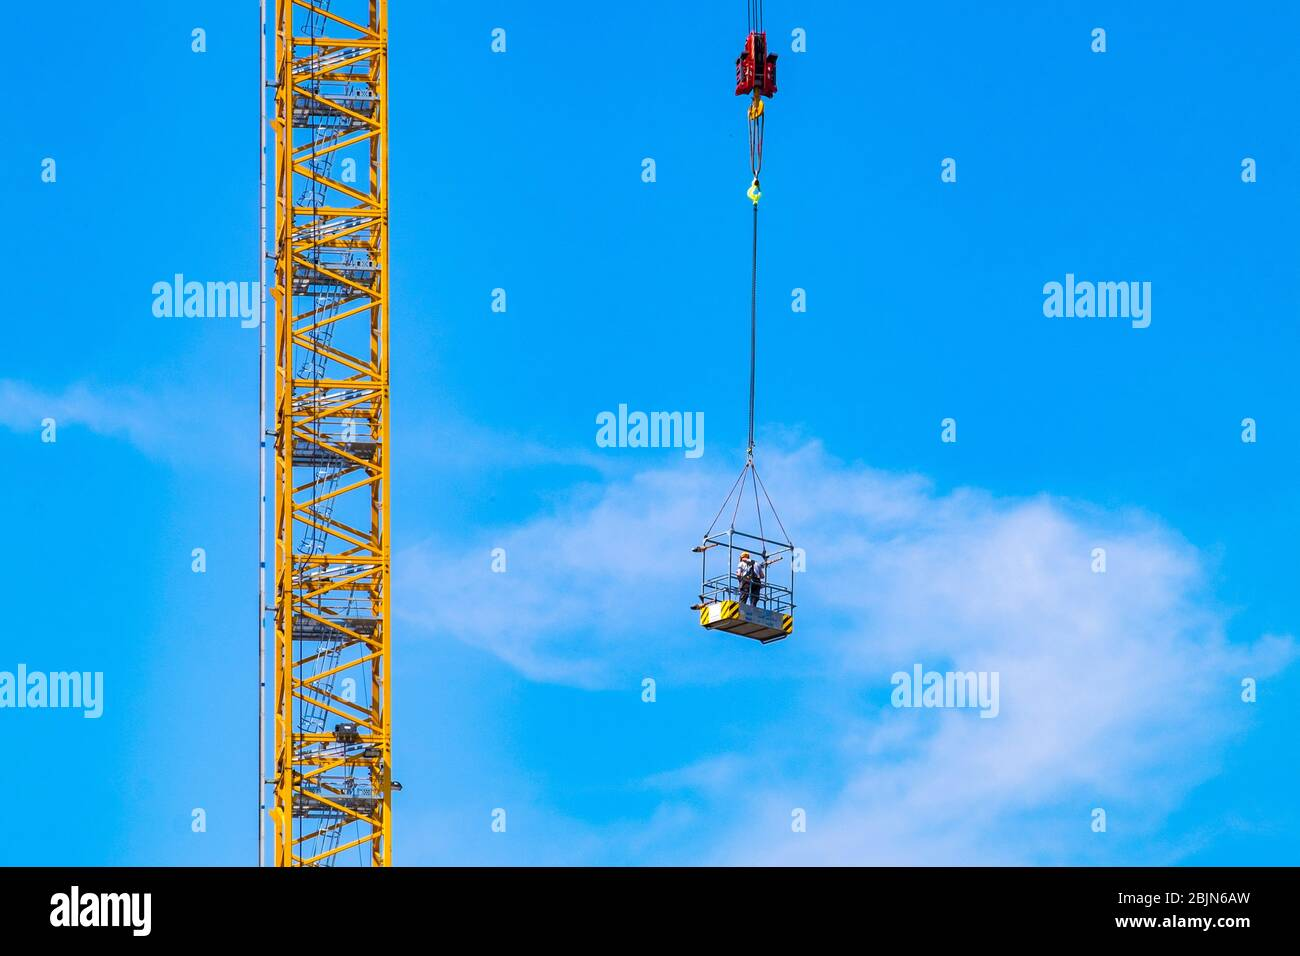 Construction worker hoisted up at a construction site at Strijp-S, Eindhoven, The Netherlands. Stock Photo